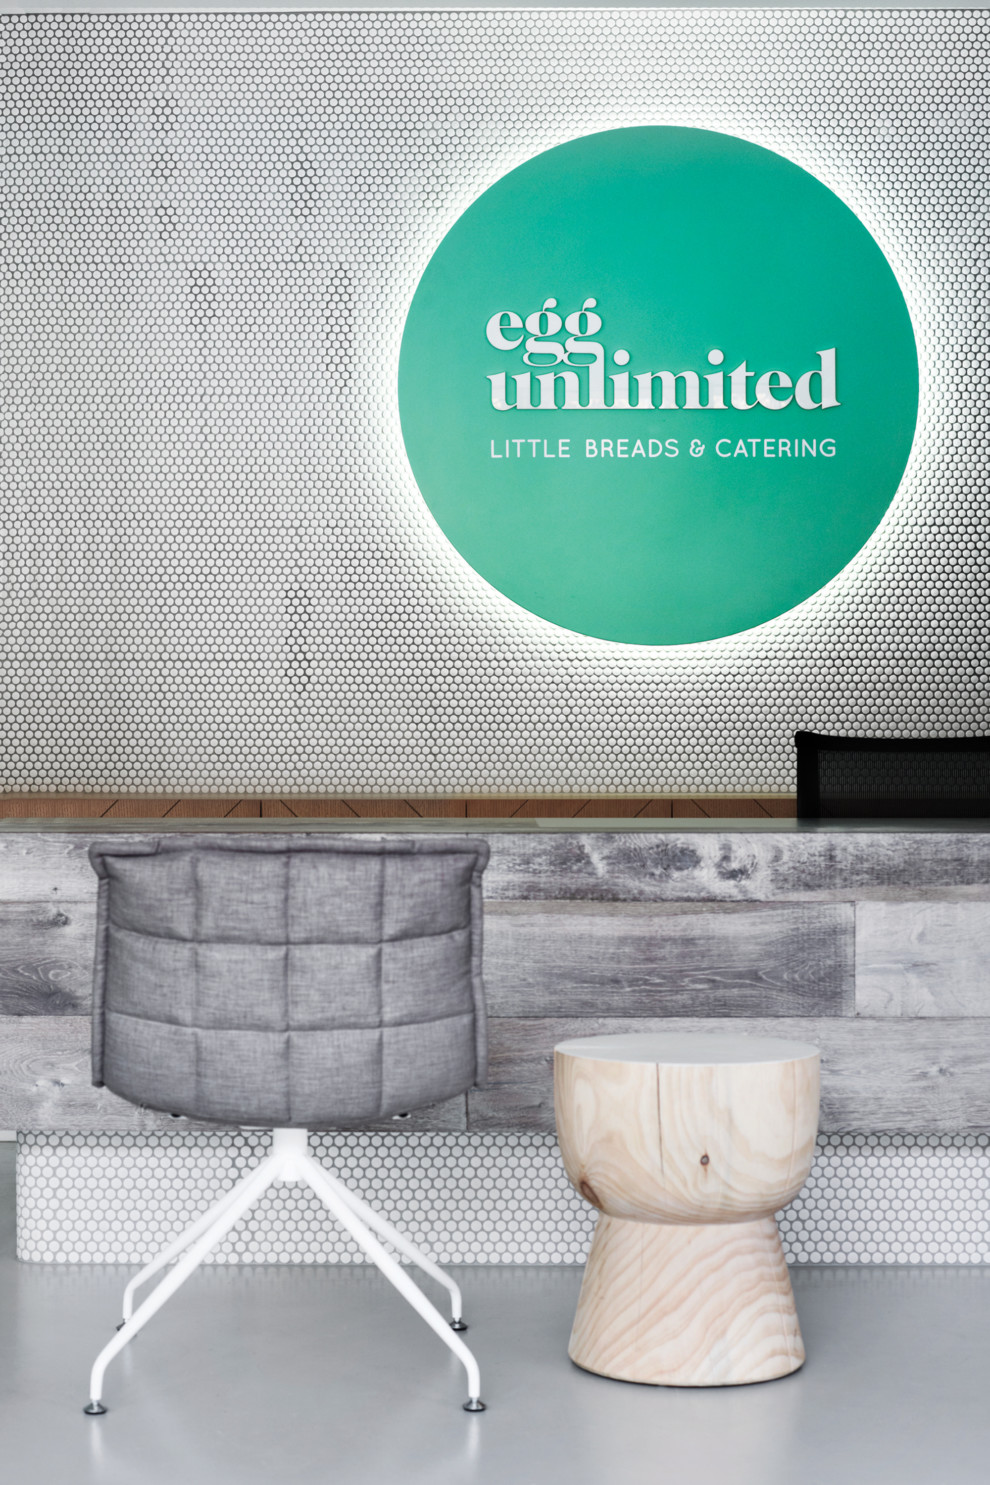 Egg Unlimited - Signage